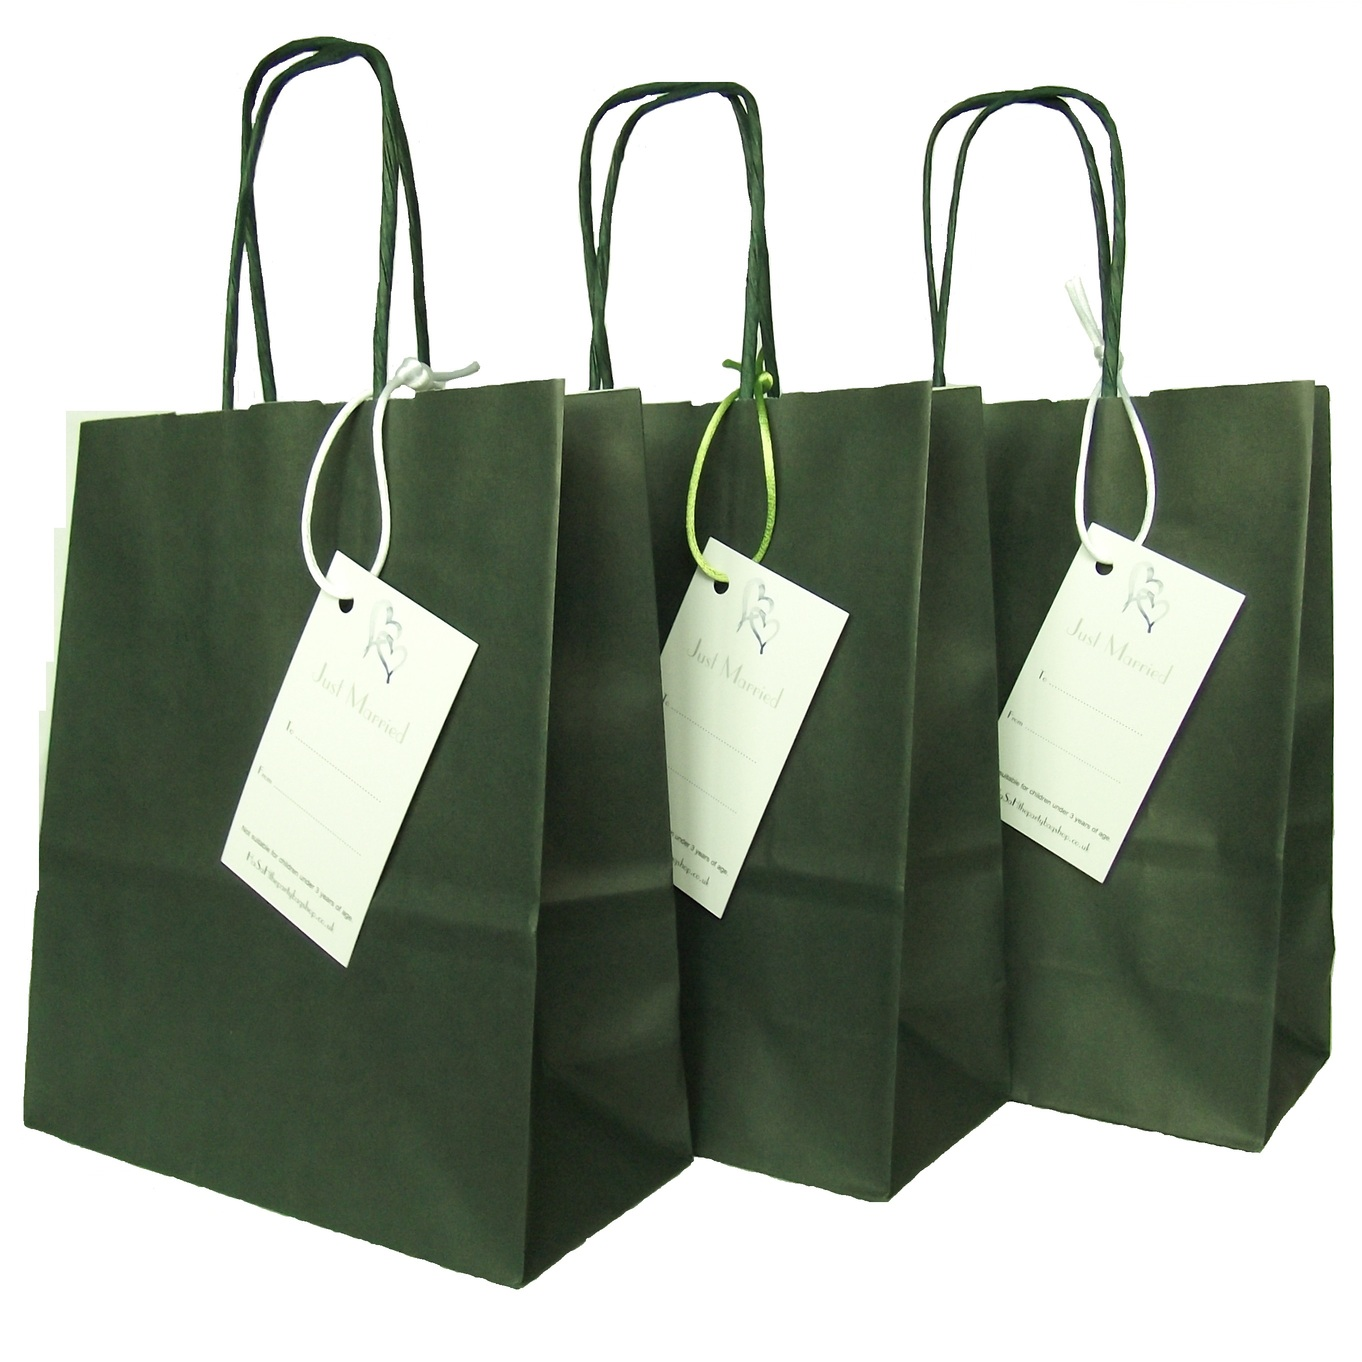 Wedding Labels For Gift Bags: Wedding Paper Dark Green Gift Favour Bag With Just Married